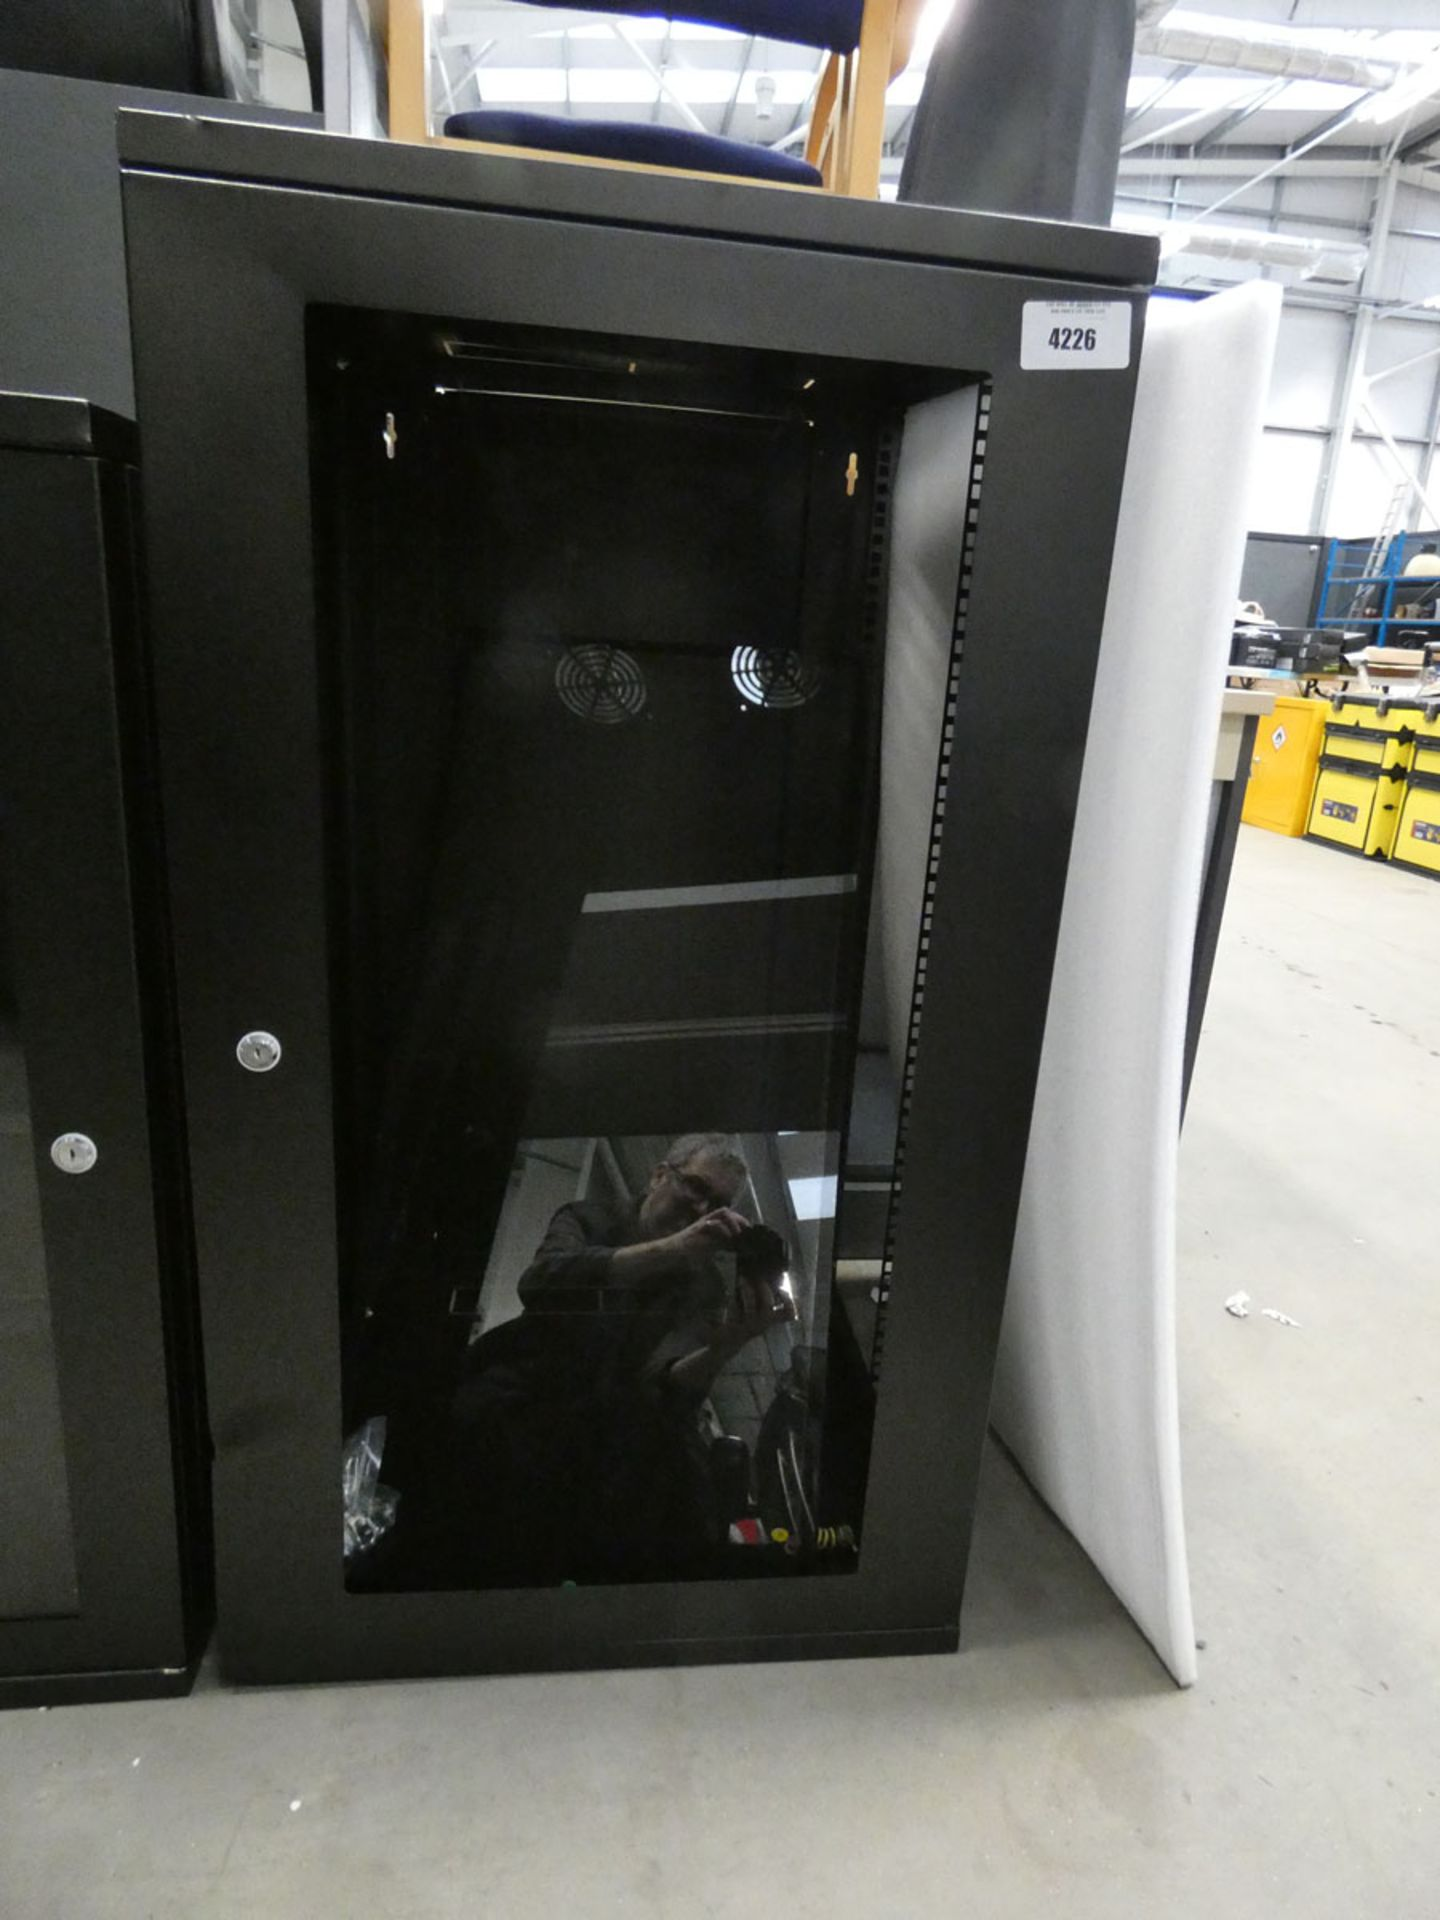 Tall black comms cabinet